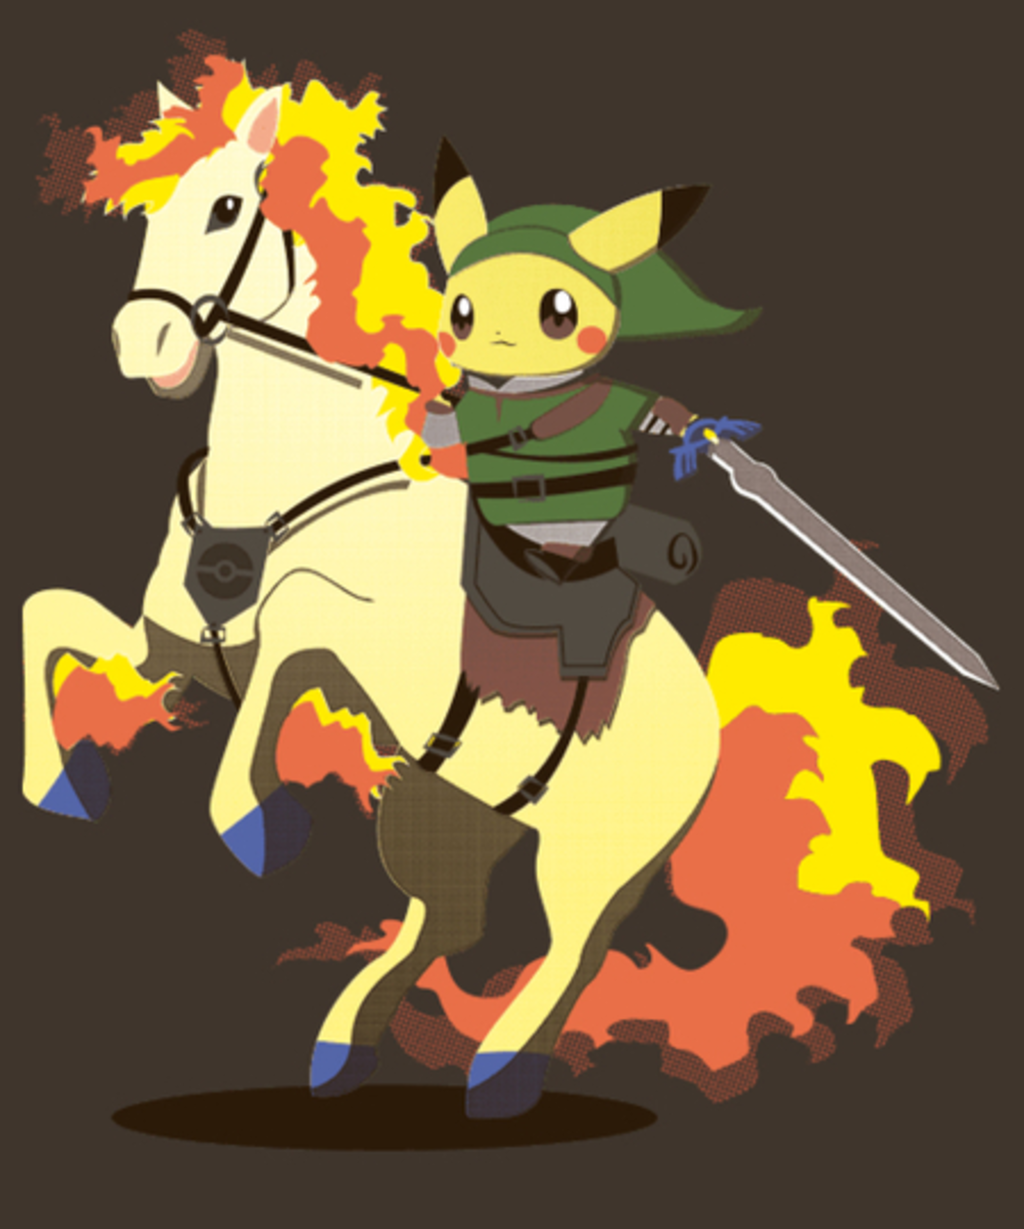 Qwertee: The Legend of Pika